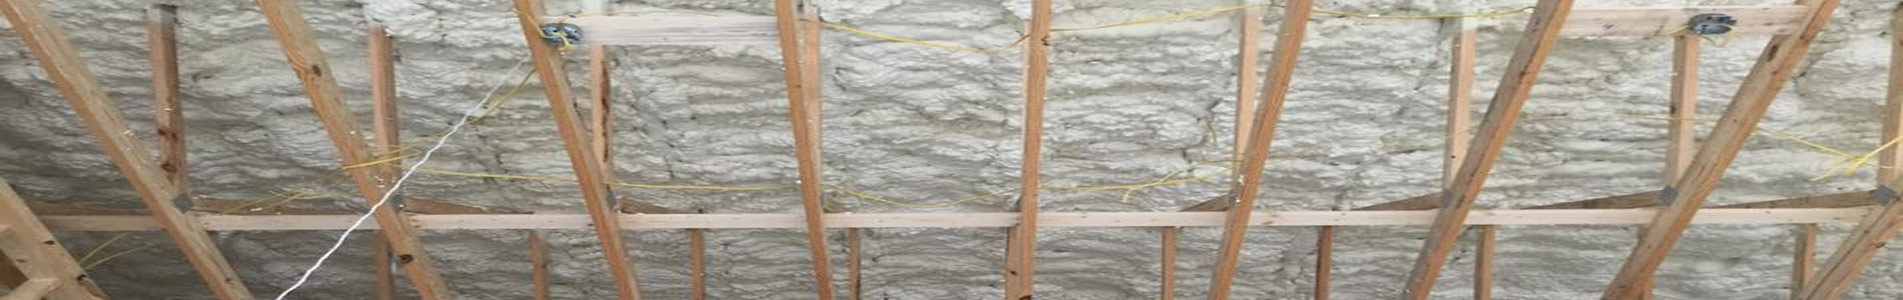 Spray Foam & Rigid Foam Insulation Comparison Near Charleston, Lexington, Georgetown